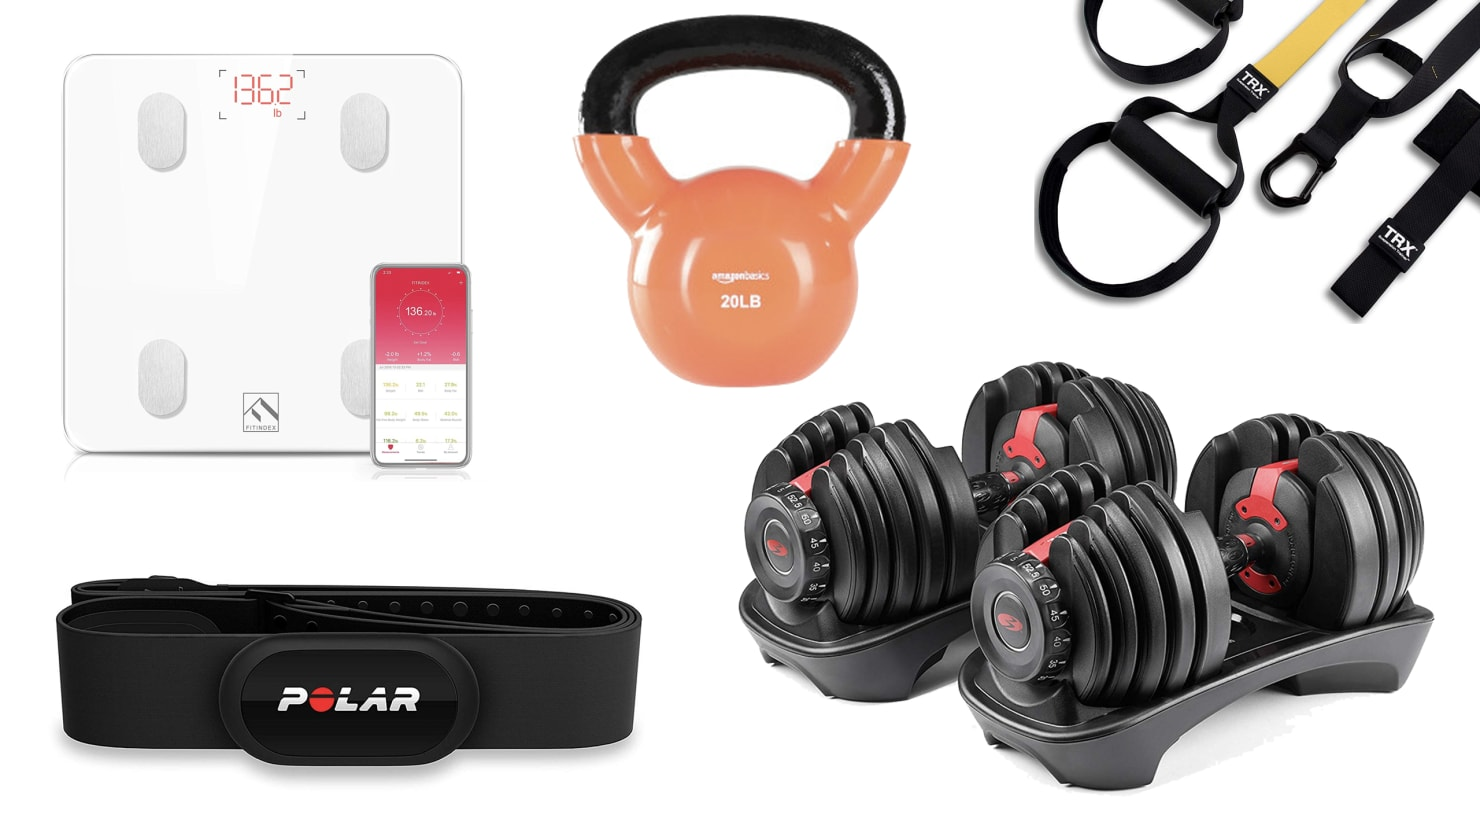 Ready to Start a Home Workout? These Products on Amazon Will Help Get You Started Without the Fuss